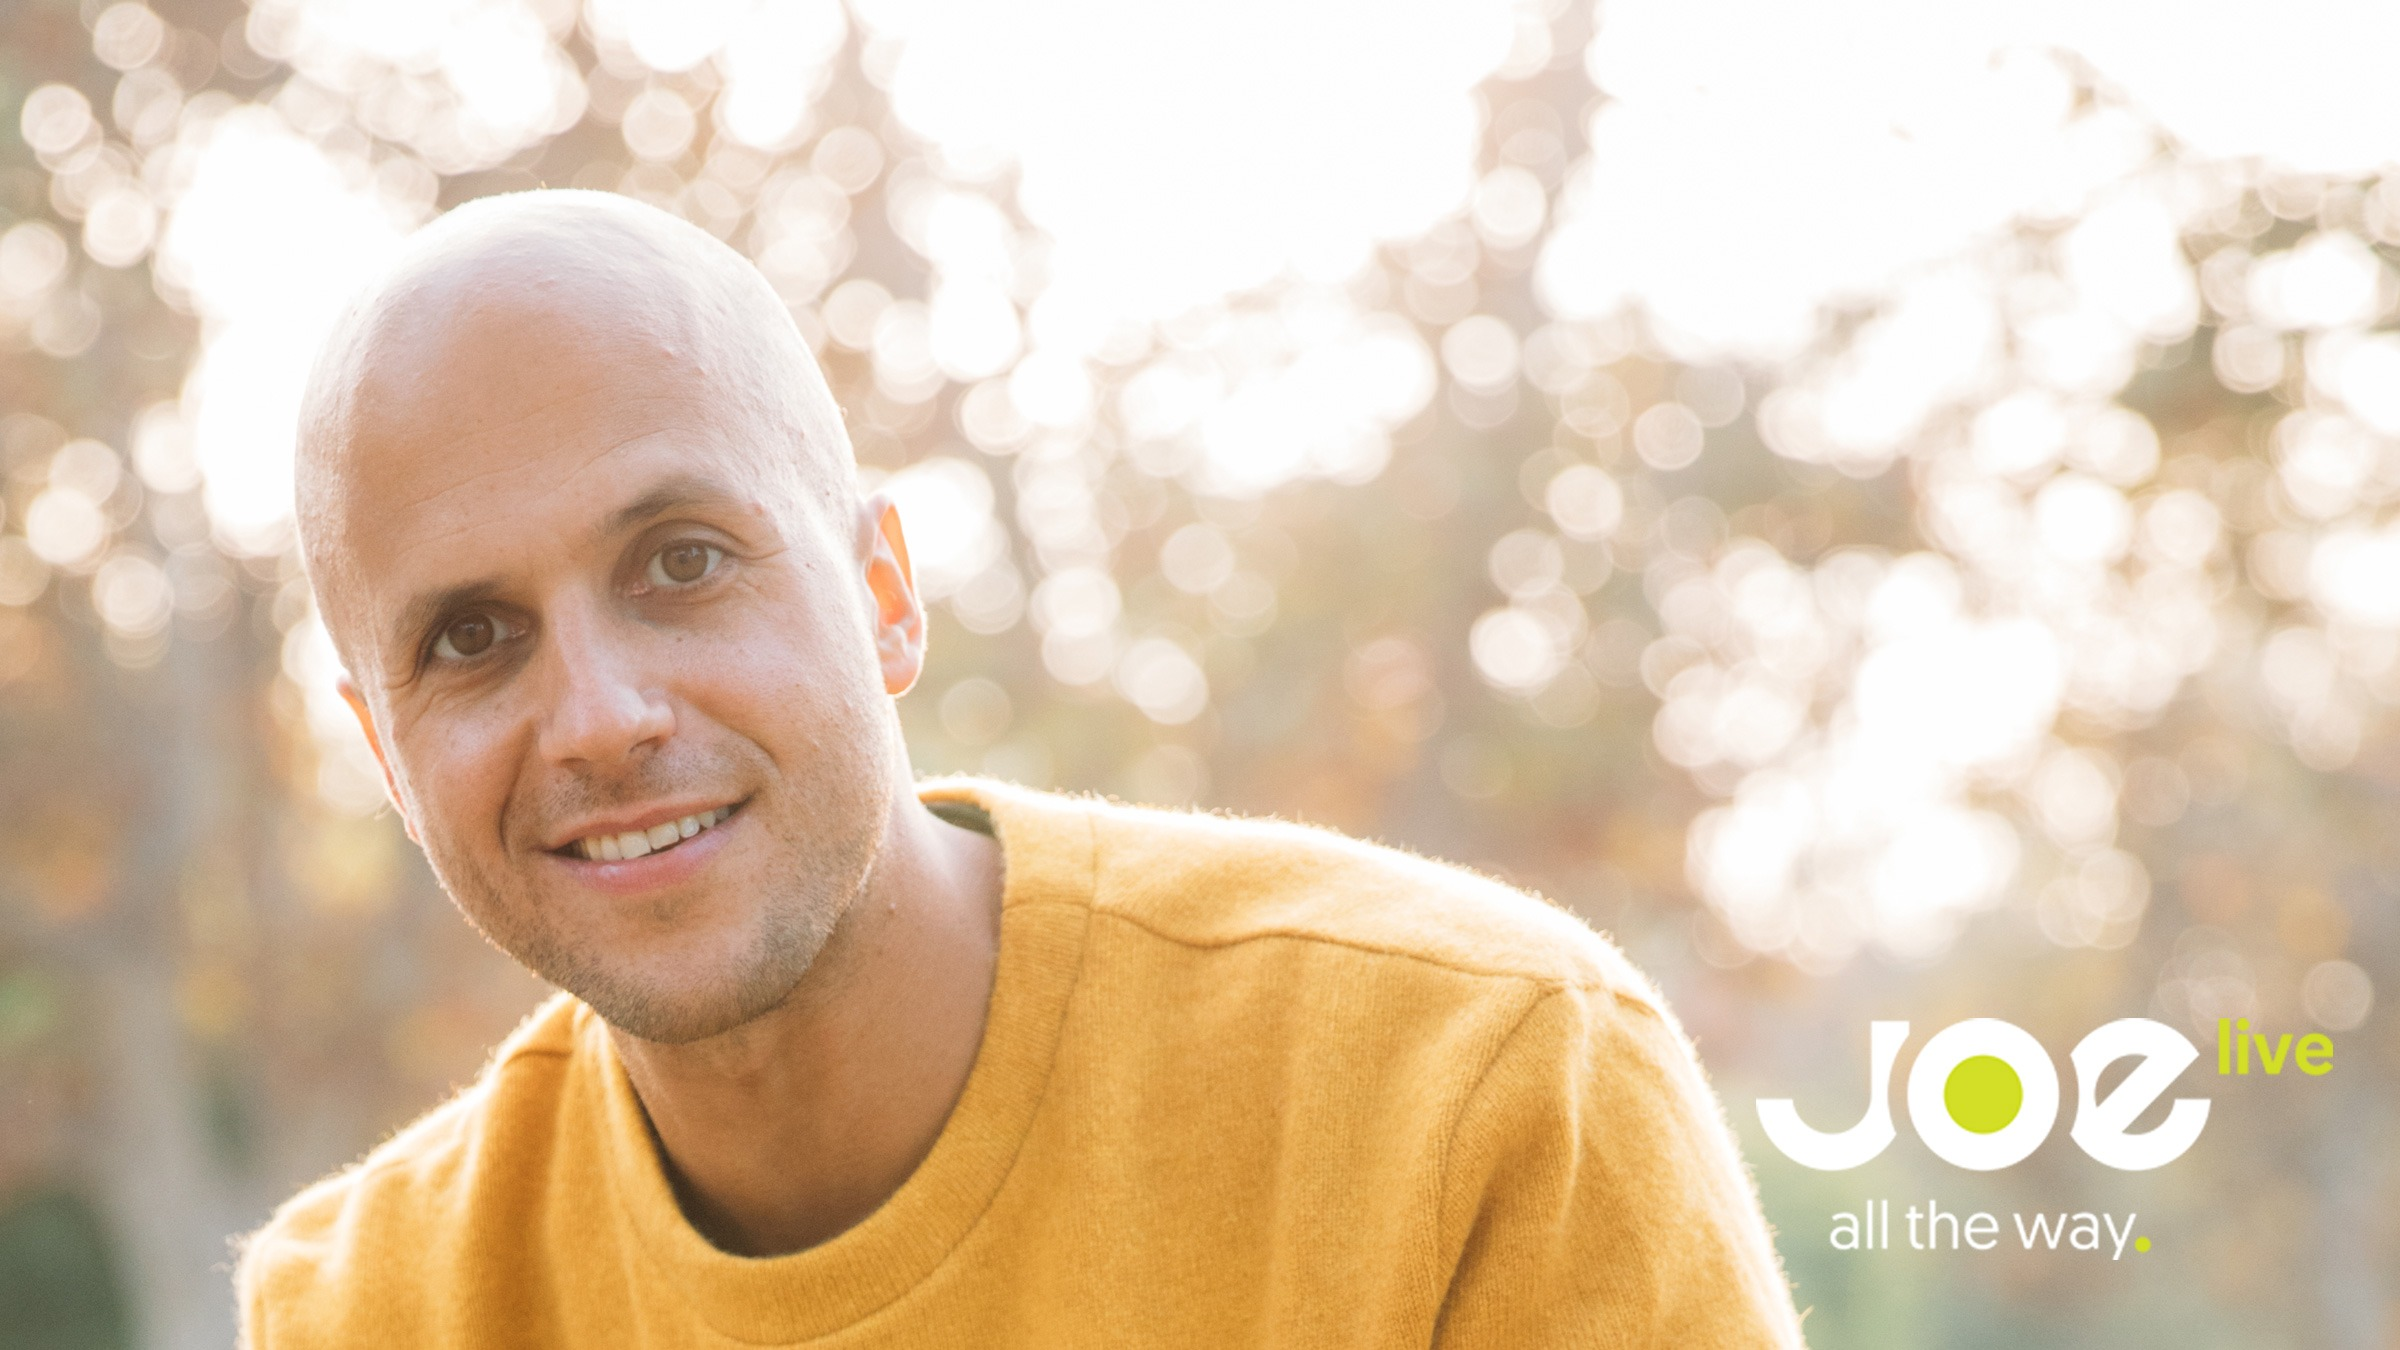 Joe live   milow  site